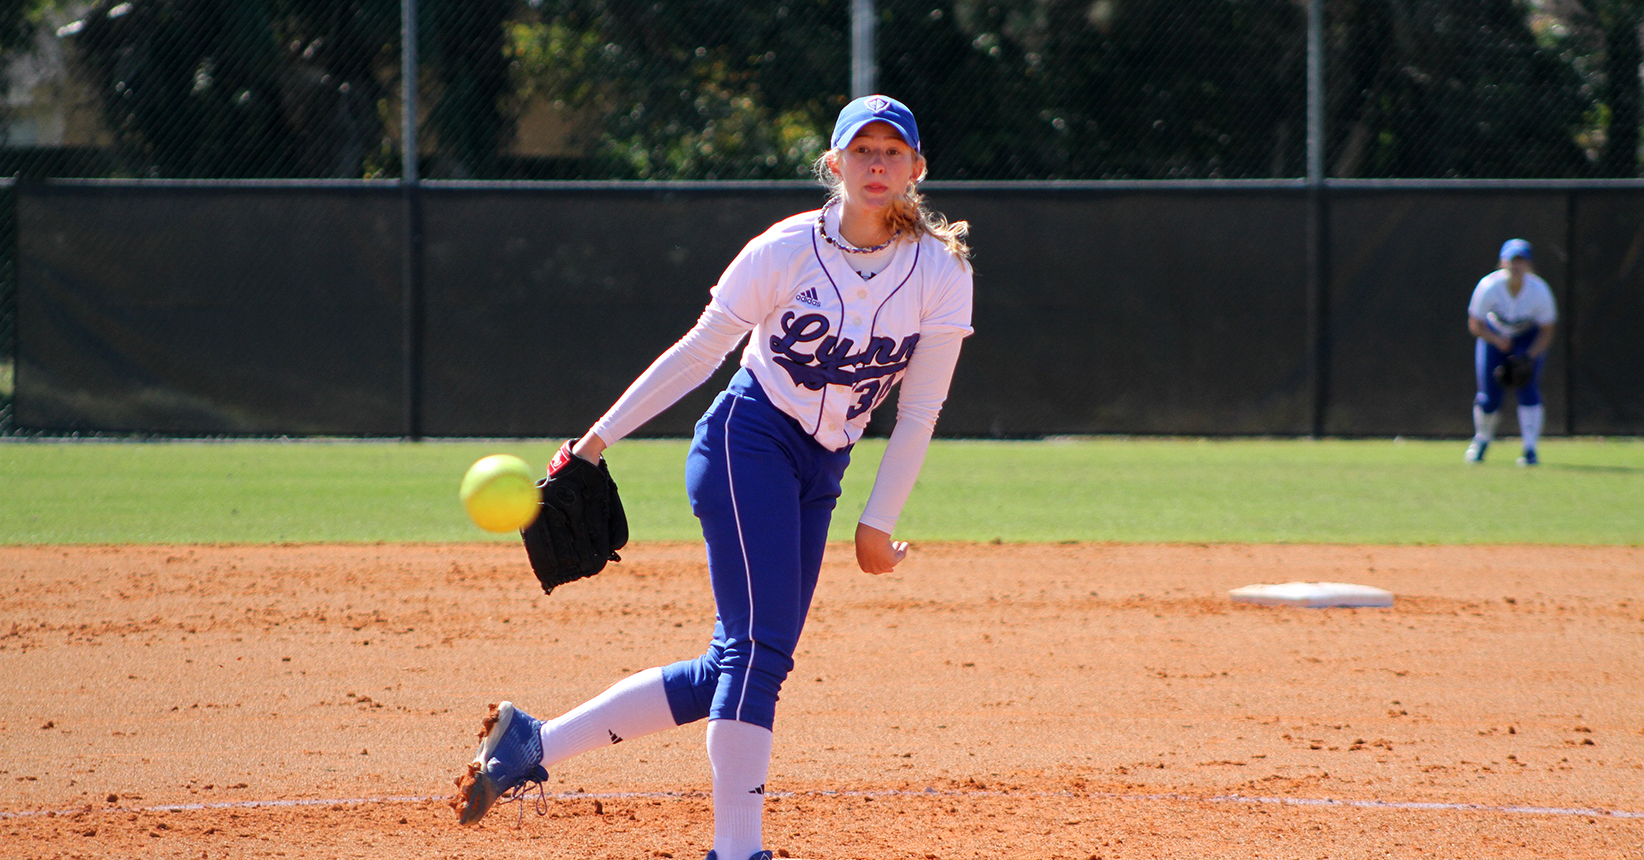 Softball Pioneers Past Panthers